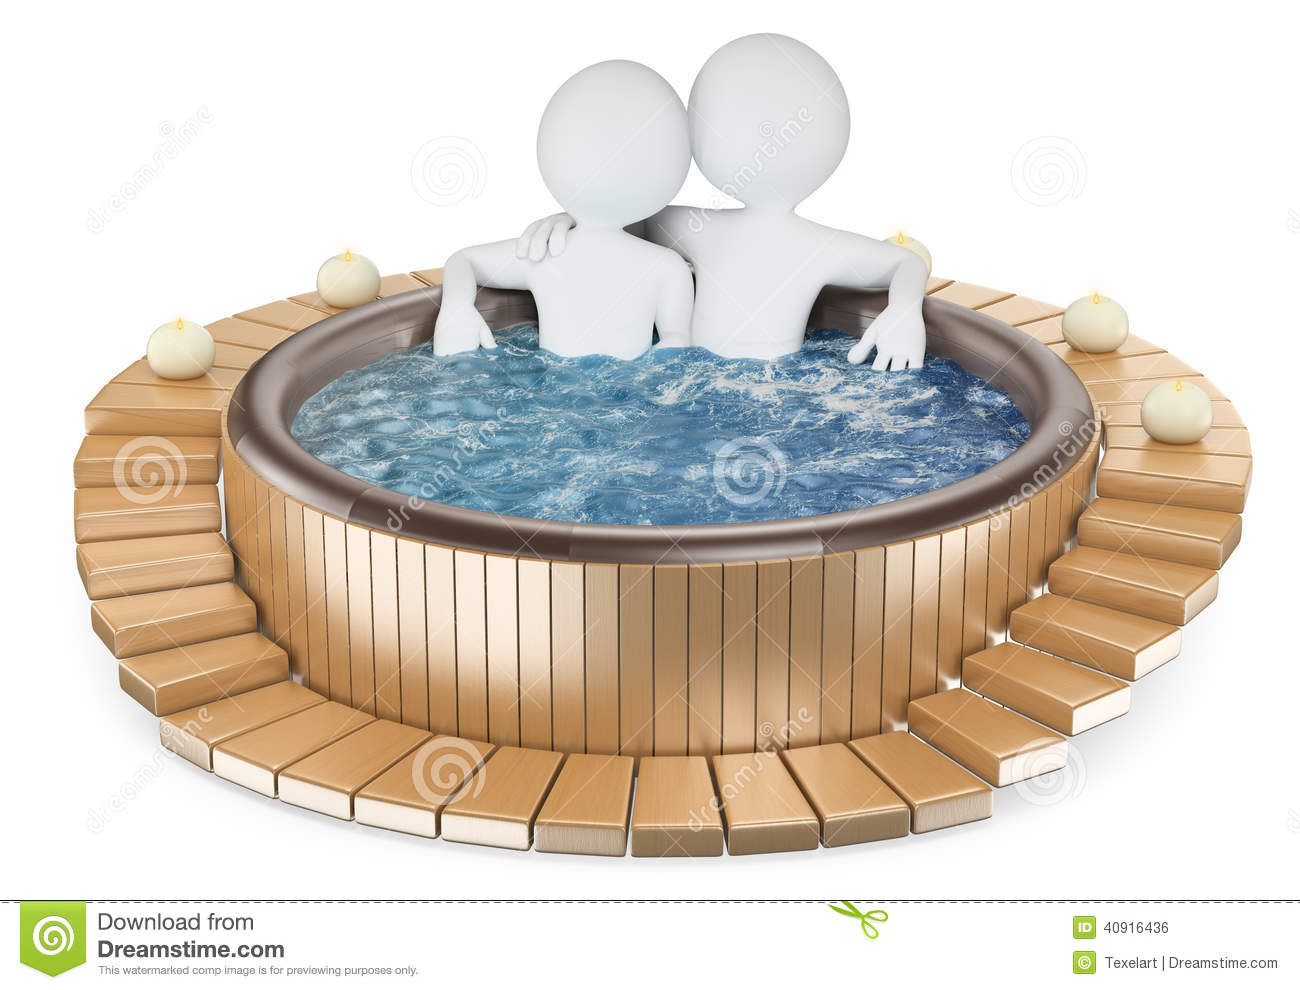 3d white people couple relaxing in a jacuzzi stock illustration image 40916436. Black Bedroom Furniture Sets. Home Design Ideas